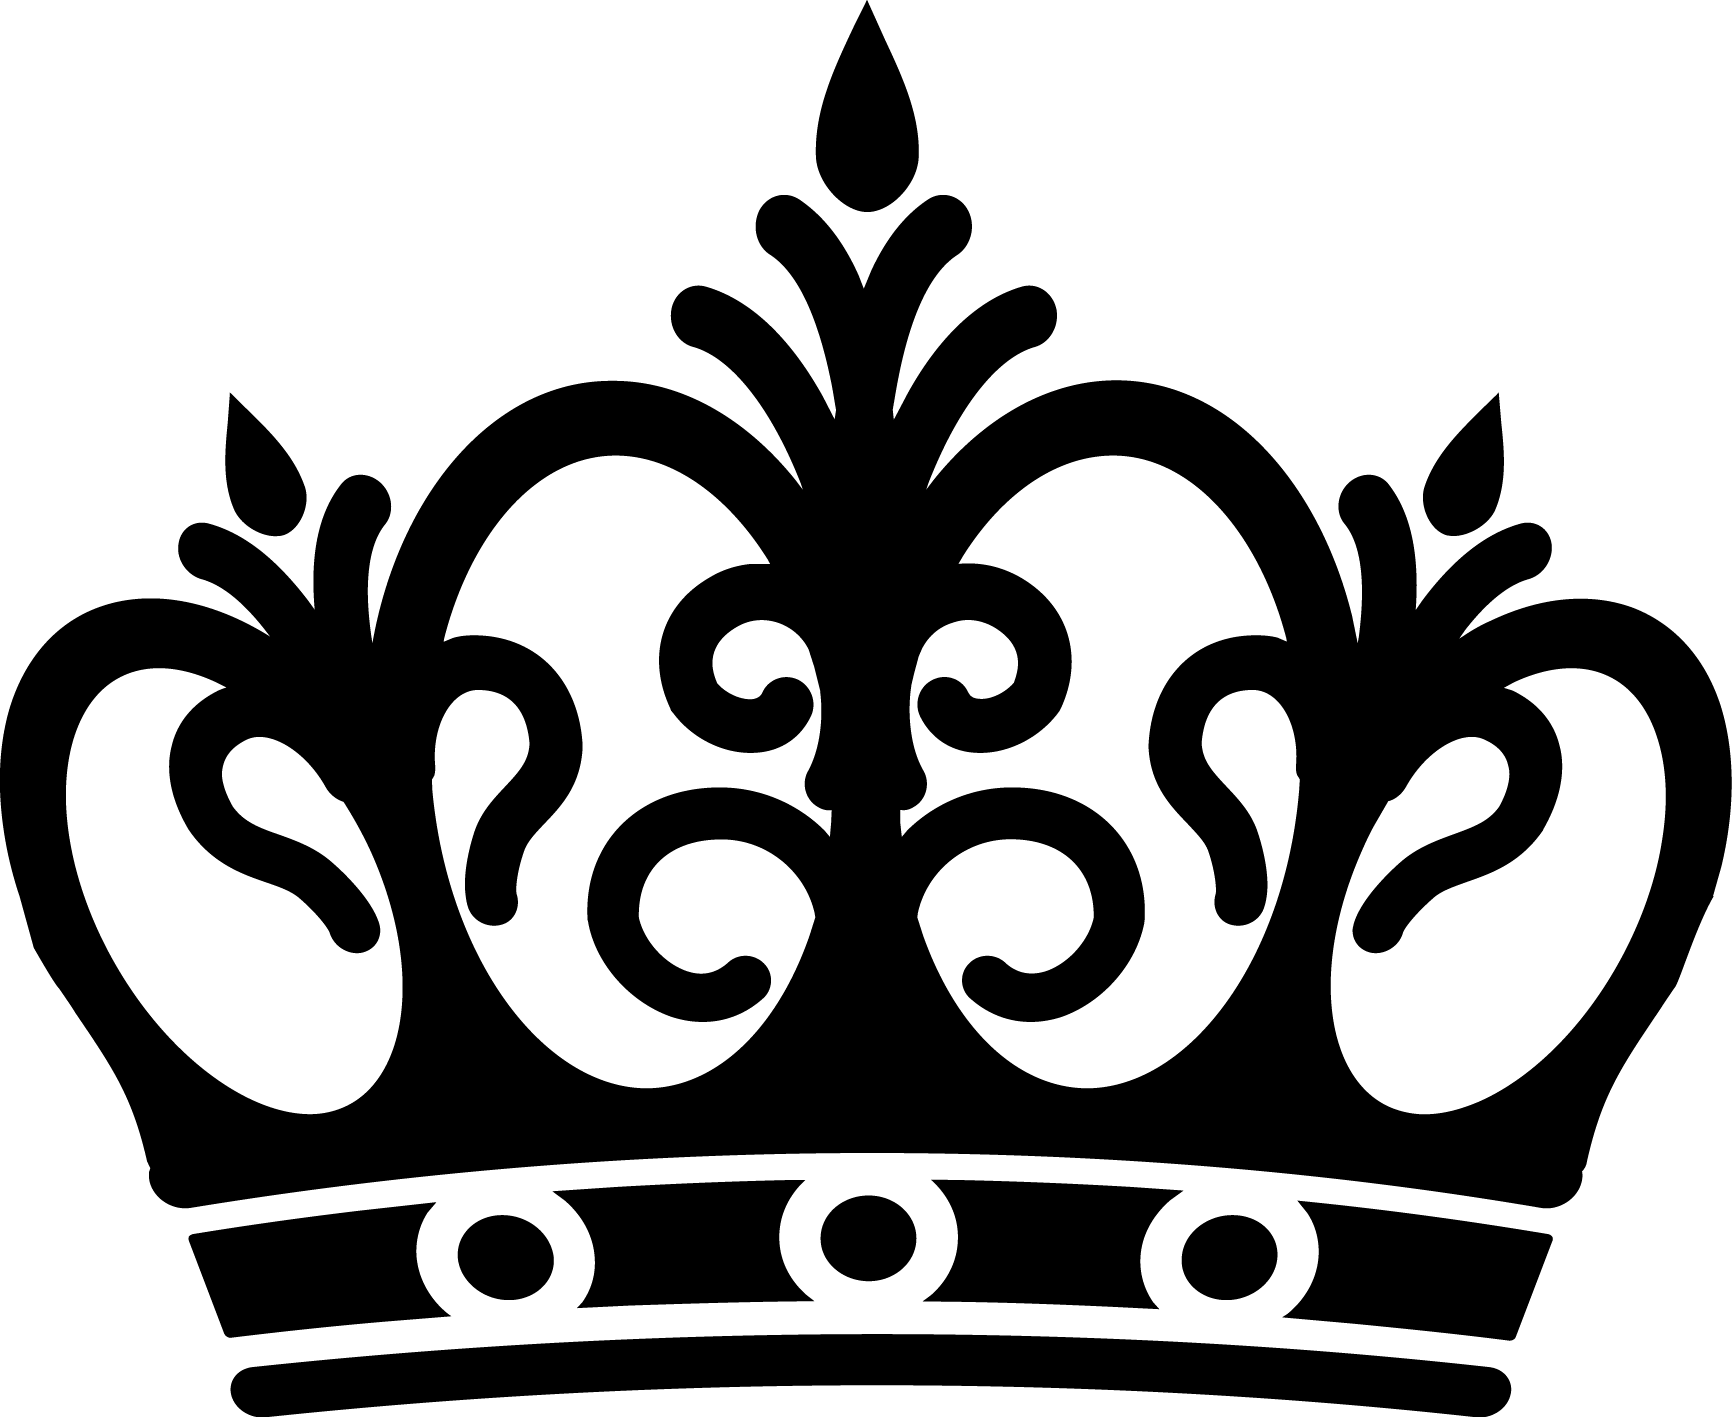 Crown clipart elegant graphic black and white download Crown Drawing Images at GetDrawings.com | Free for personal use ... graphic black and white download